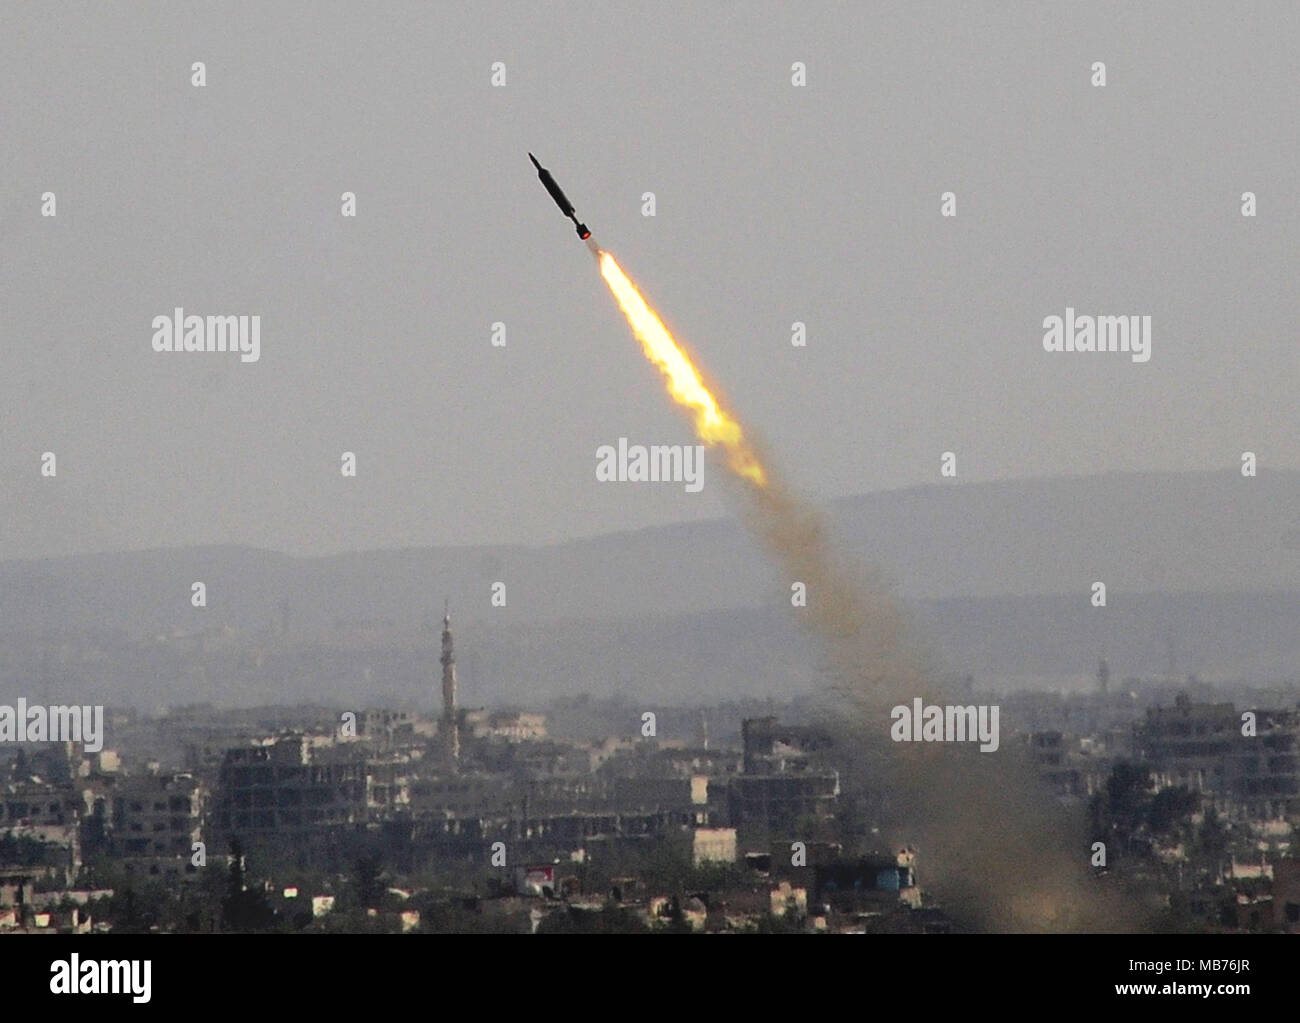 Damascus, Syria. 7th Apr, 2018. A rocket is seen launched by the Syrian army in Eastern Ghouta countryside of Damascus, Syria, on April 7, 2018. The Syrian army on Saturday stormed the frontlines of the Islam Army in the Douma district of the capital Damascus' Eastern Ghouta countryside, state news agency SANA reported. Credit: Ammar Safarjalani/Xinhua/Alamy Live News - Stock Image